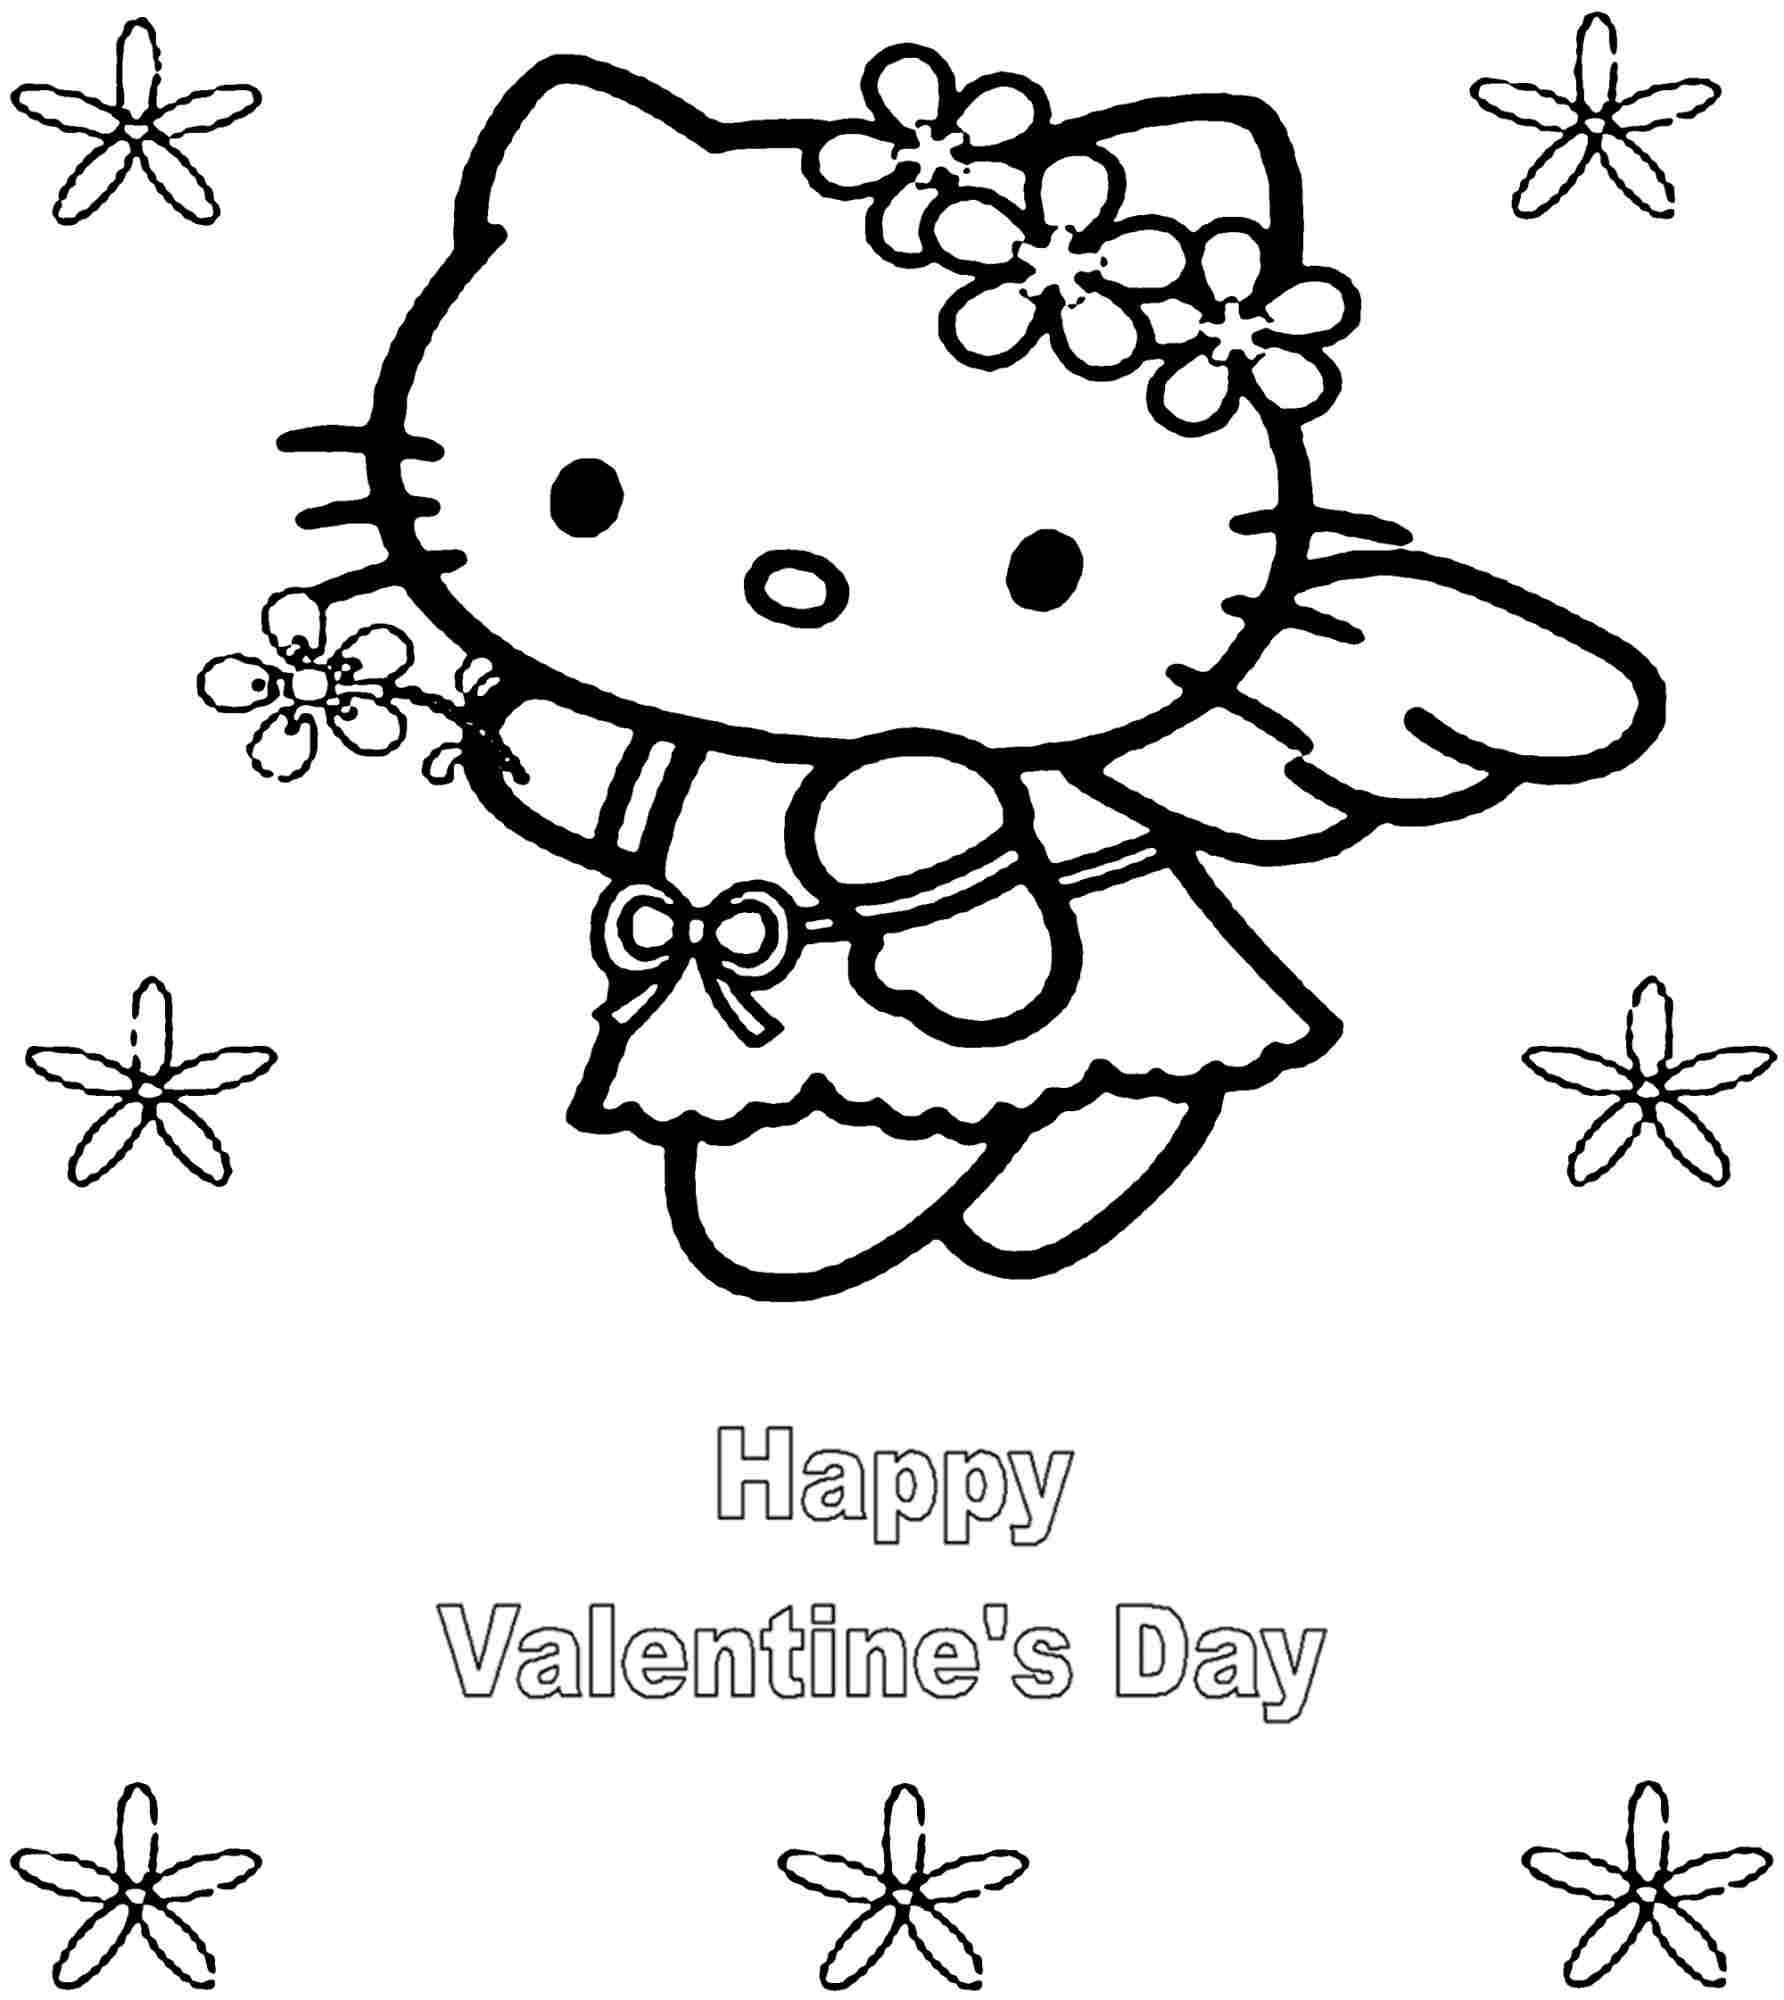 Coloring book pages valentines - Name Printable Hello Kitty Valentine Coloring Pages